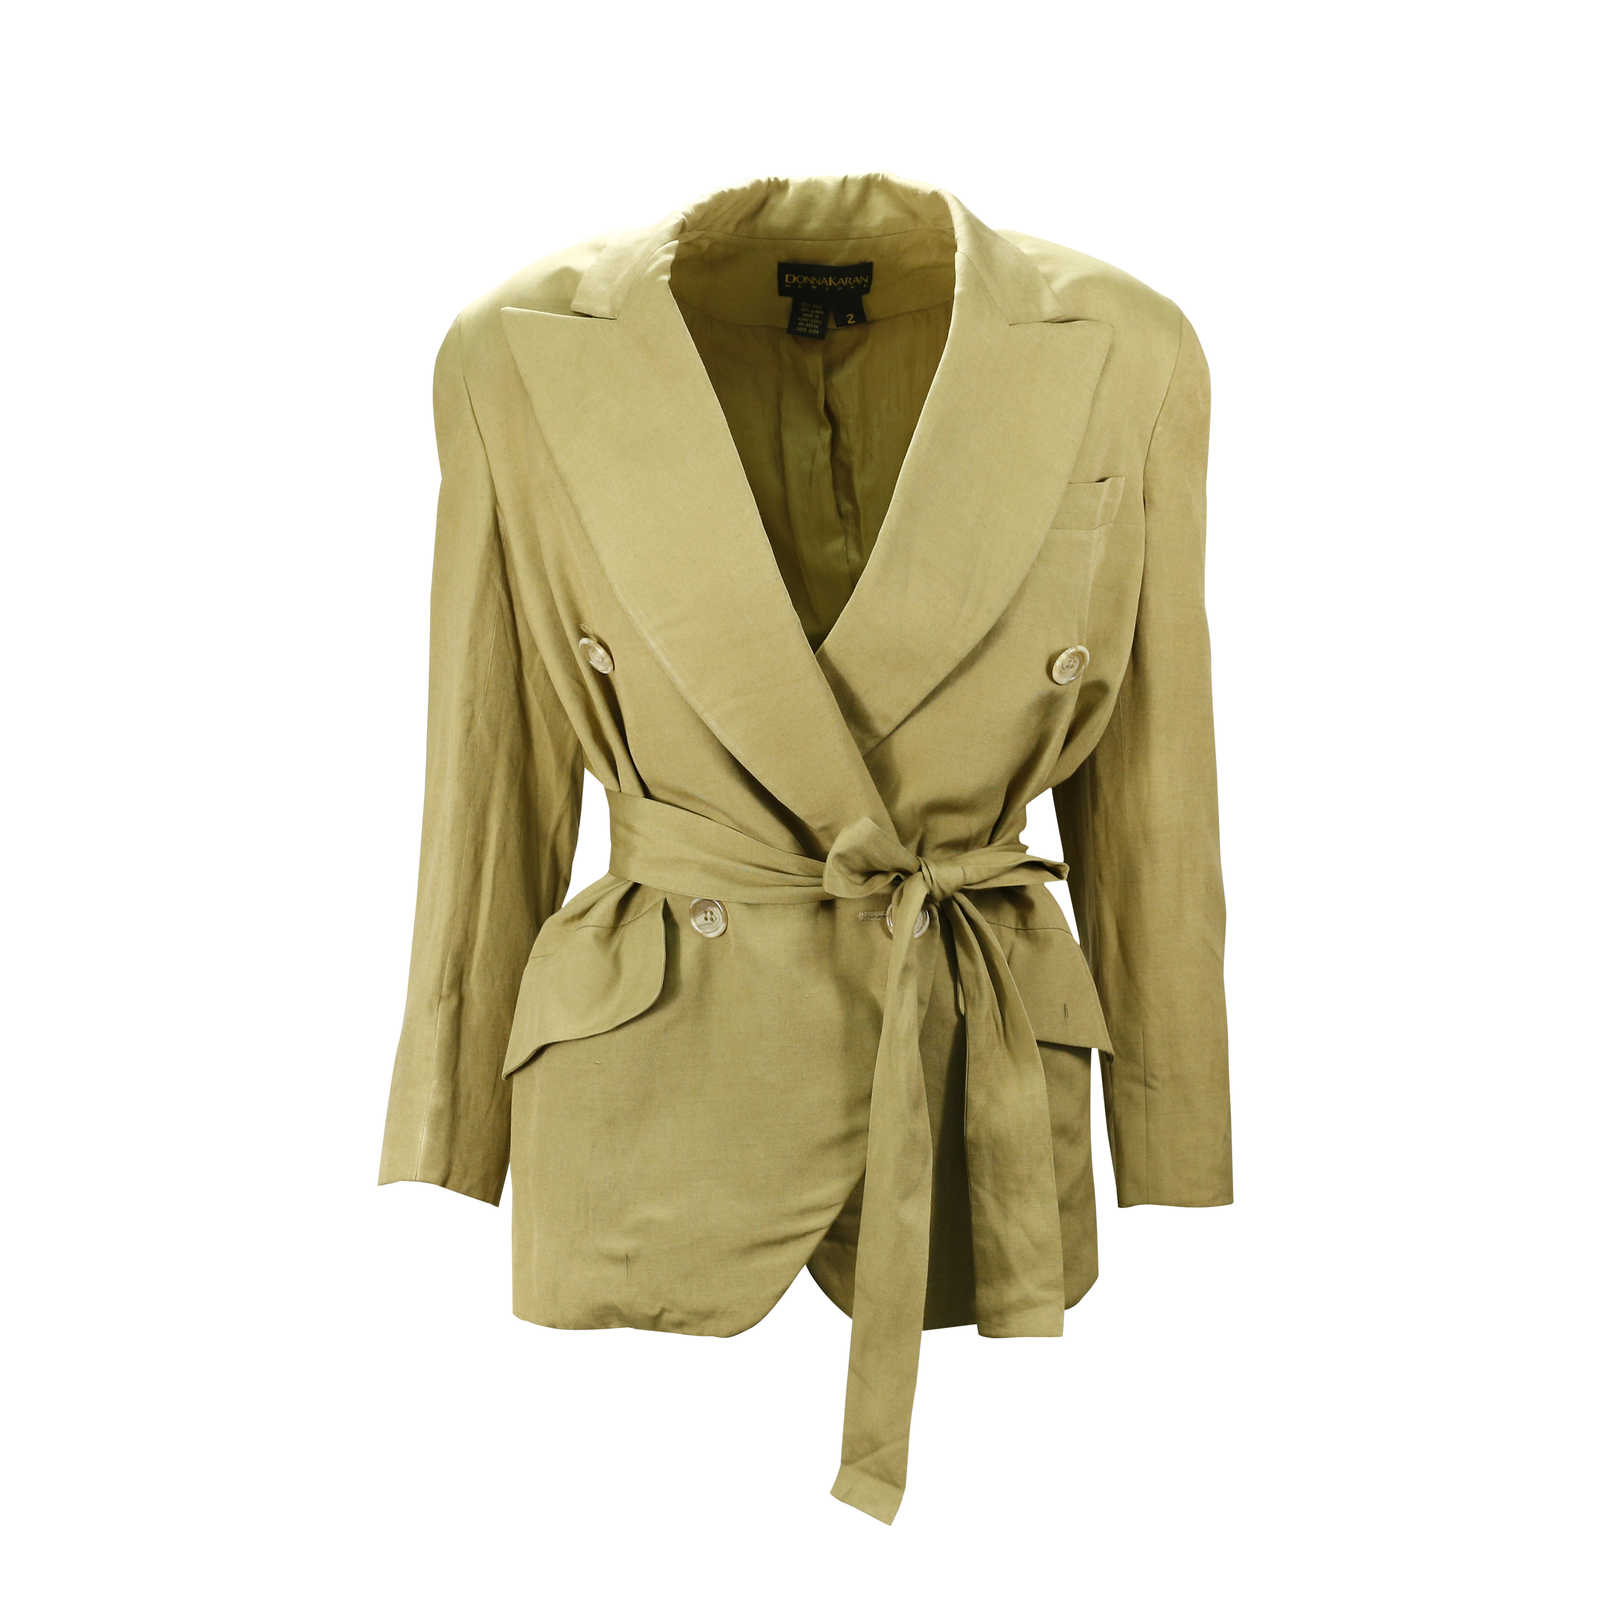 separation shoes 3410c 8a41f Authentic Vintage Donna Karan Beige Blazer (PSS-047-00087 ...